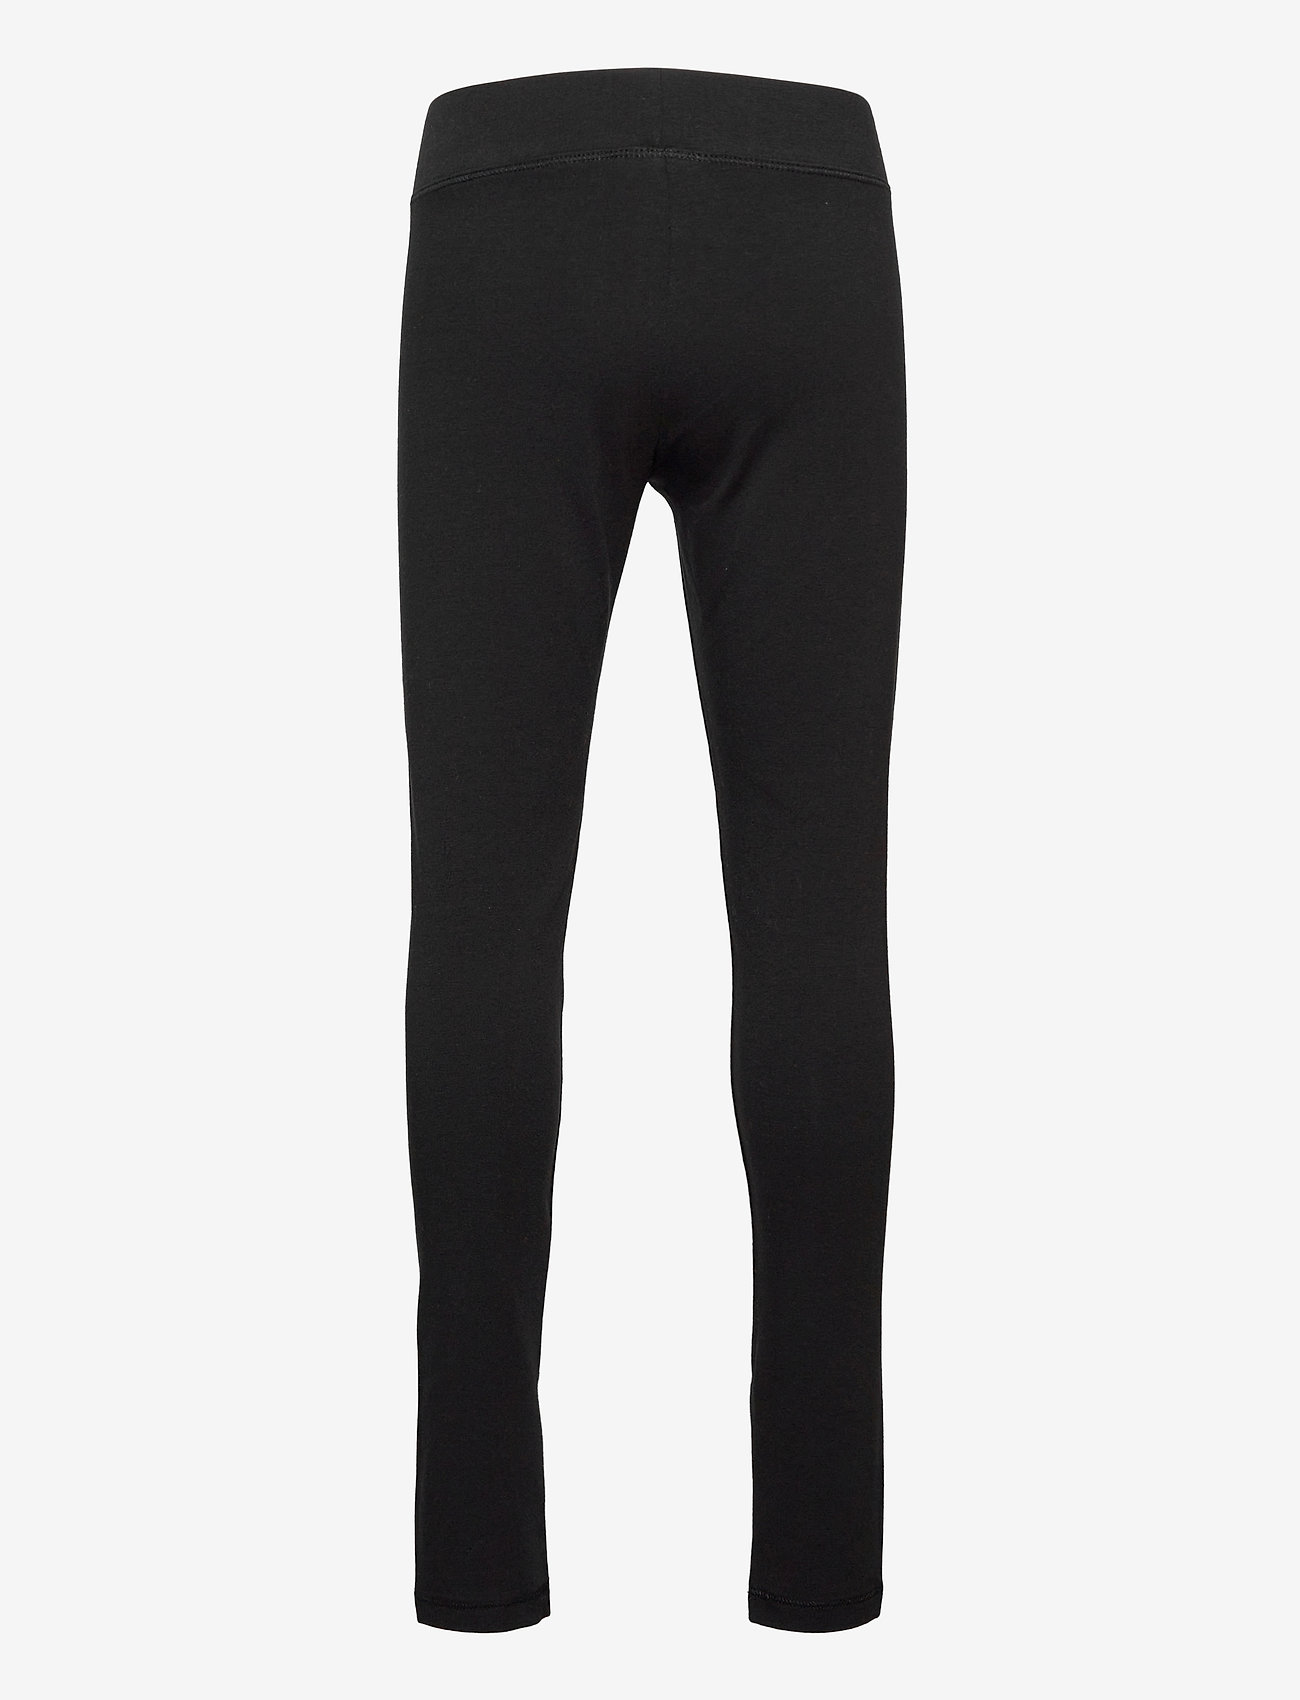 Leggings (Black Beauty) (19.20 €) - Champion ItqlU